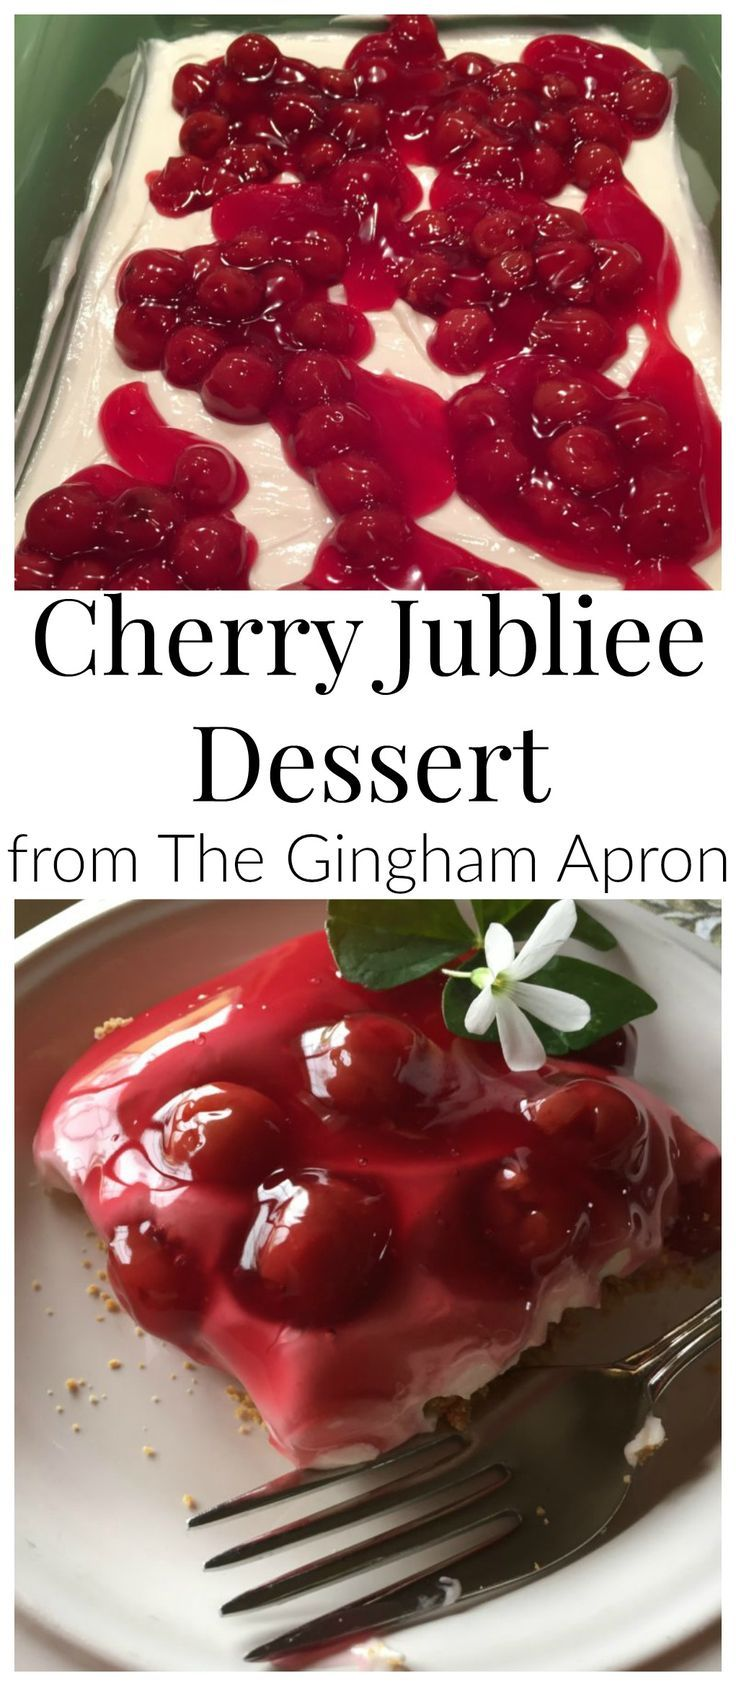 Cherry Jubilee Dessert- a scrumptious, easy to make dessert that your family will love. Tastes like cheesecake, but easier to make!